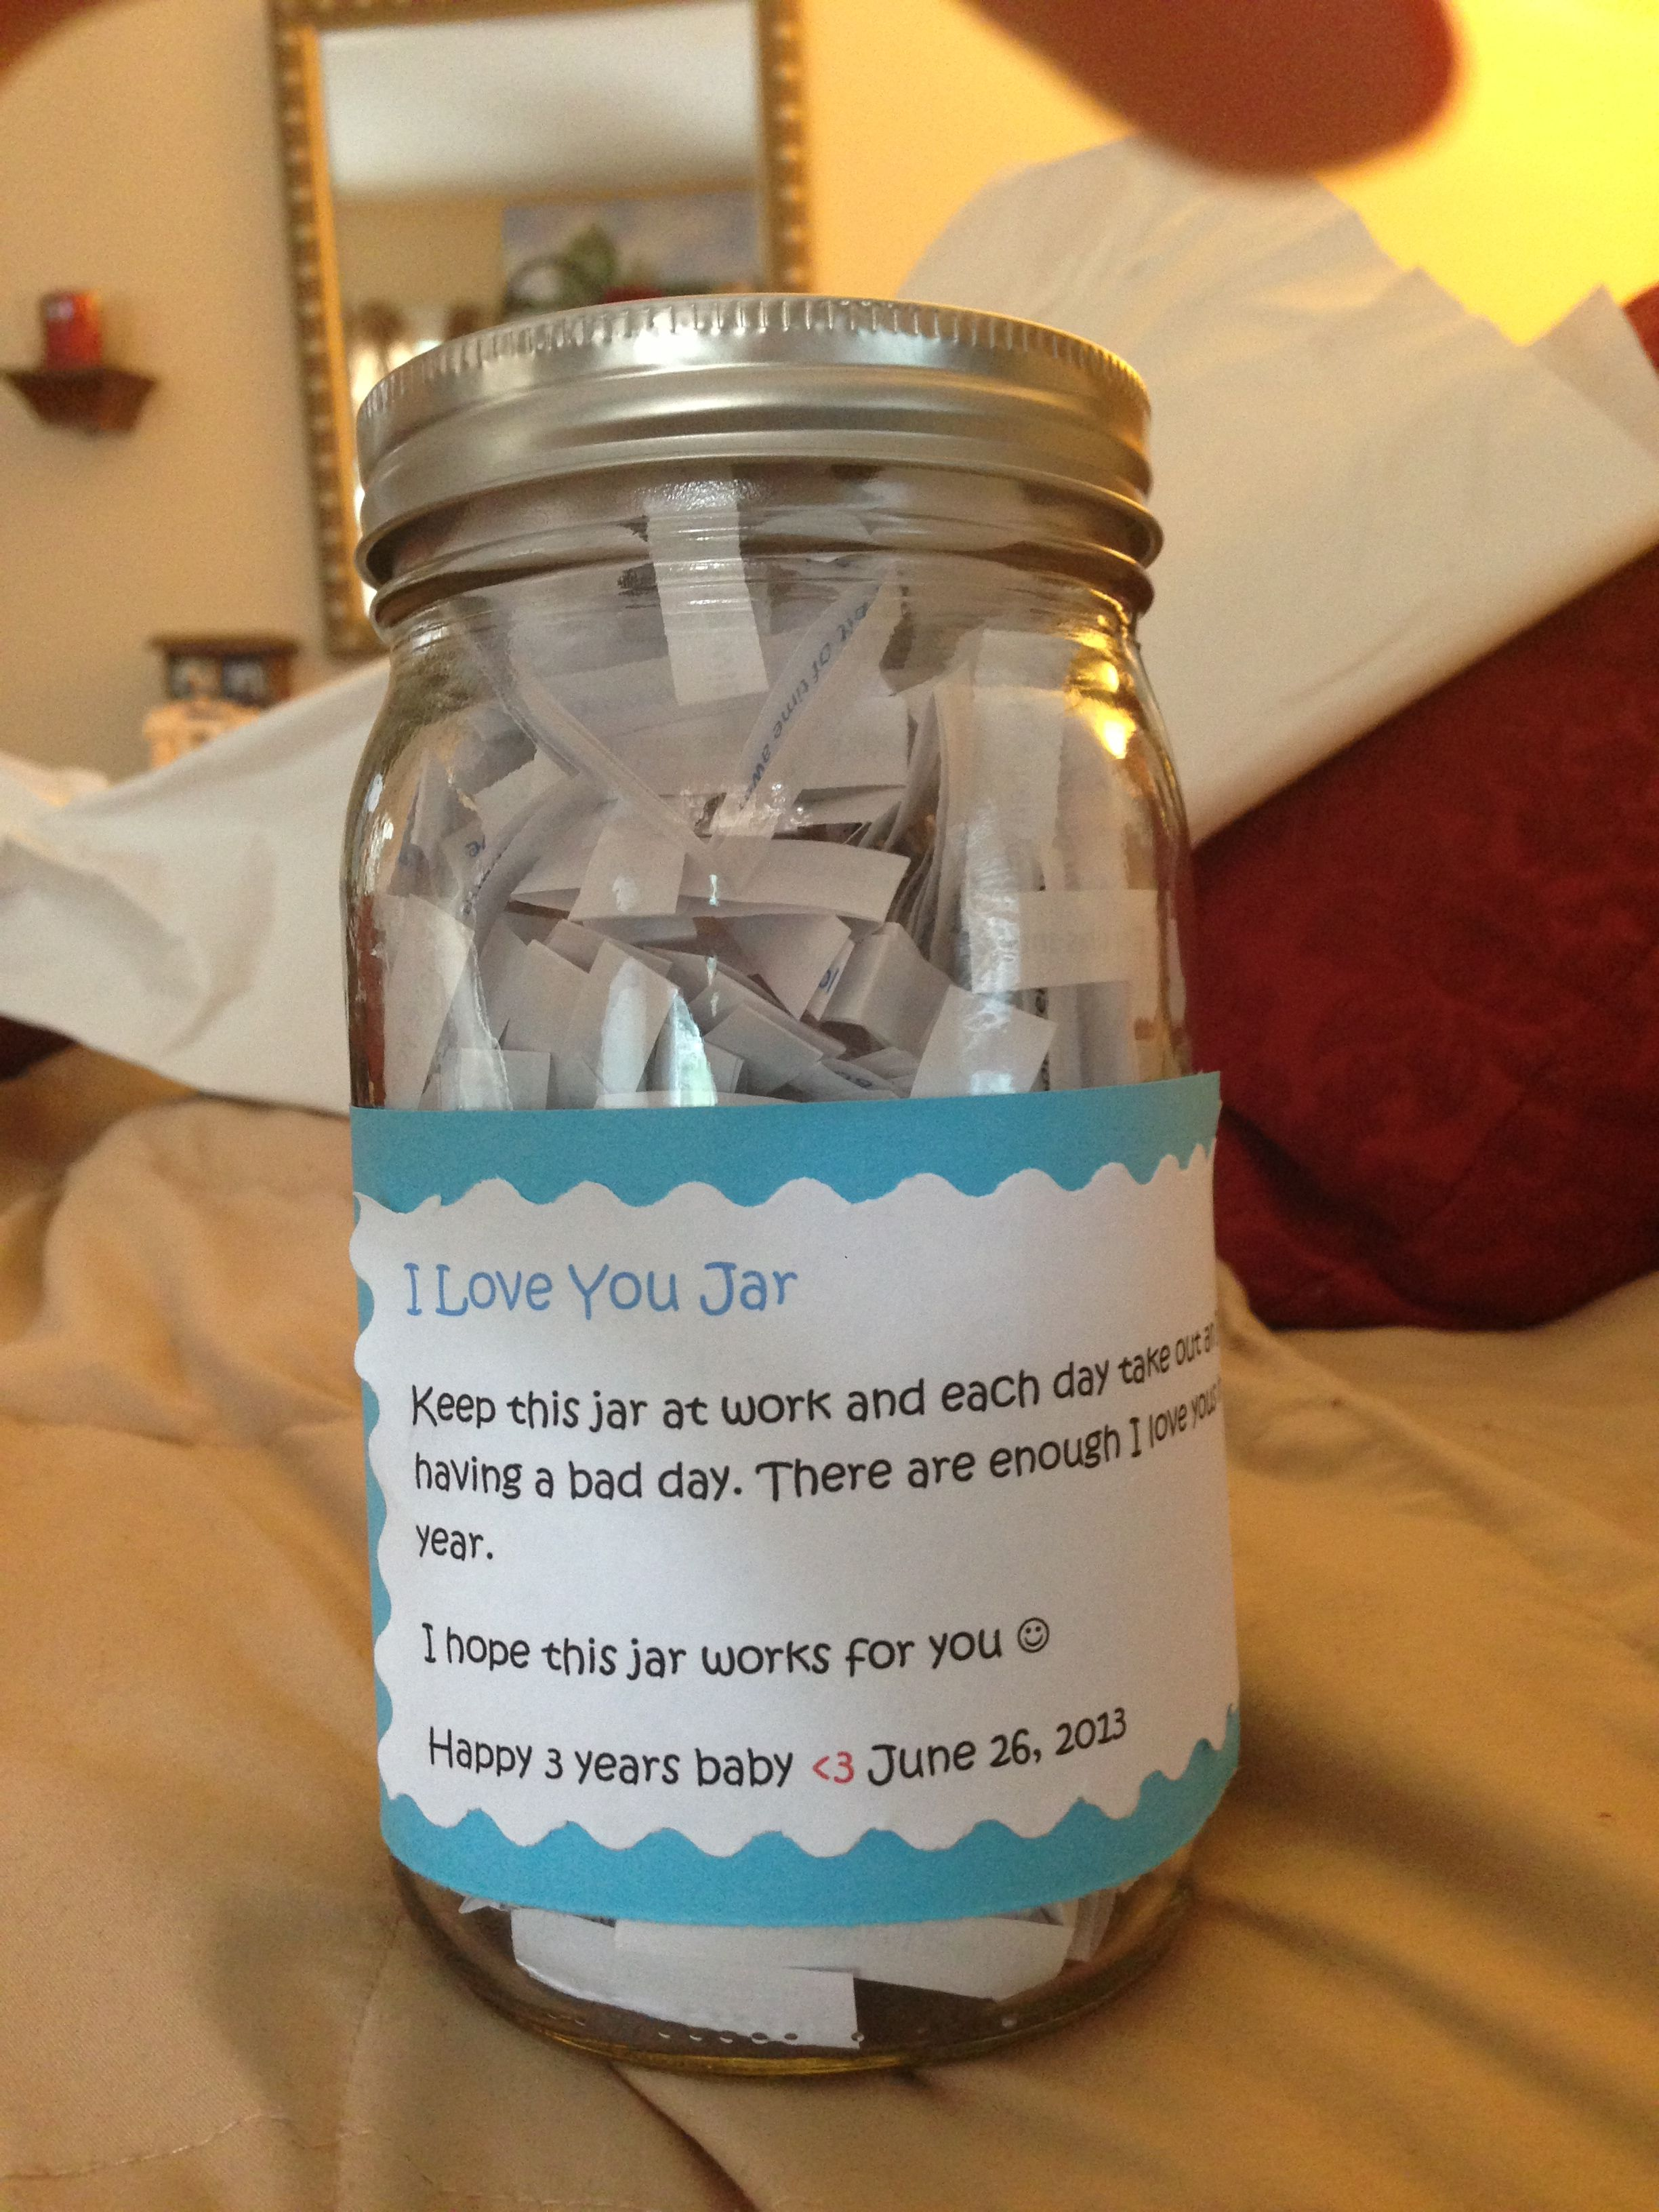 I love you jar perfect for anniversary gift fill up a jar with all